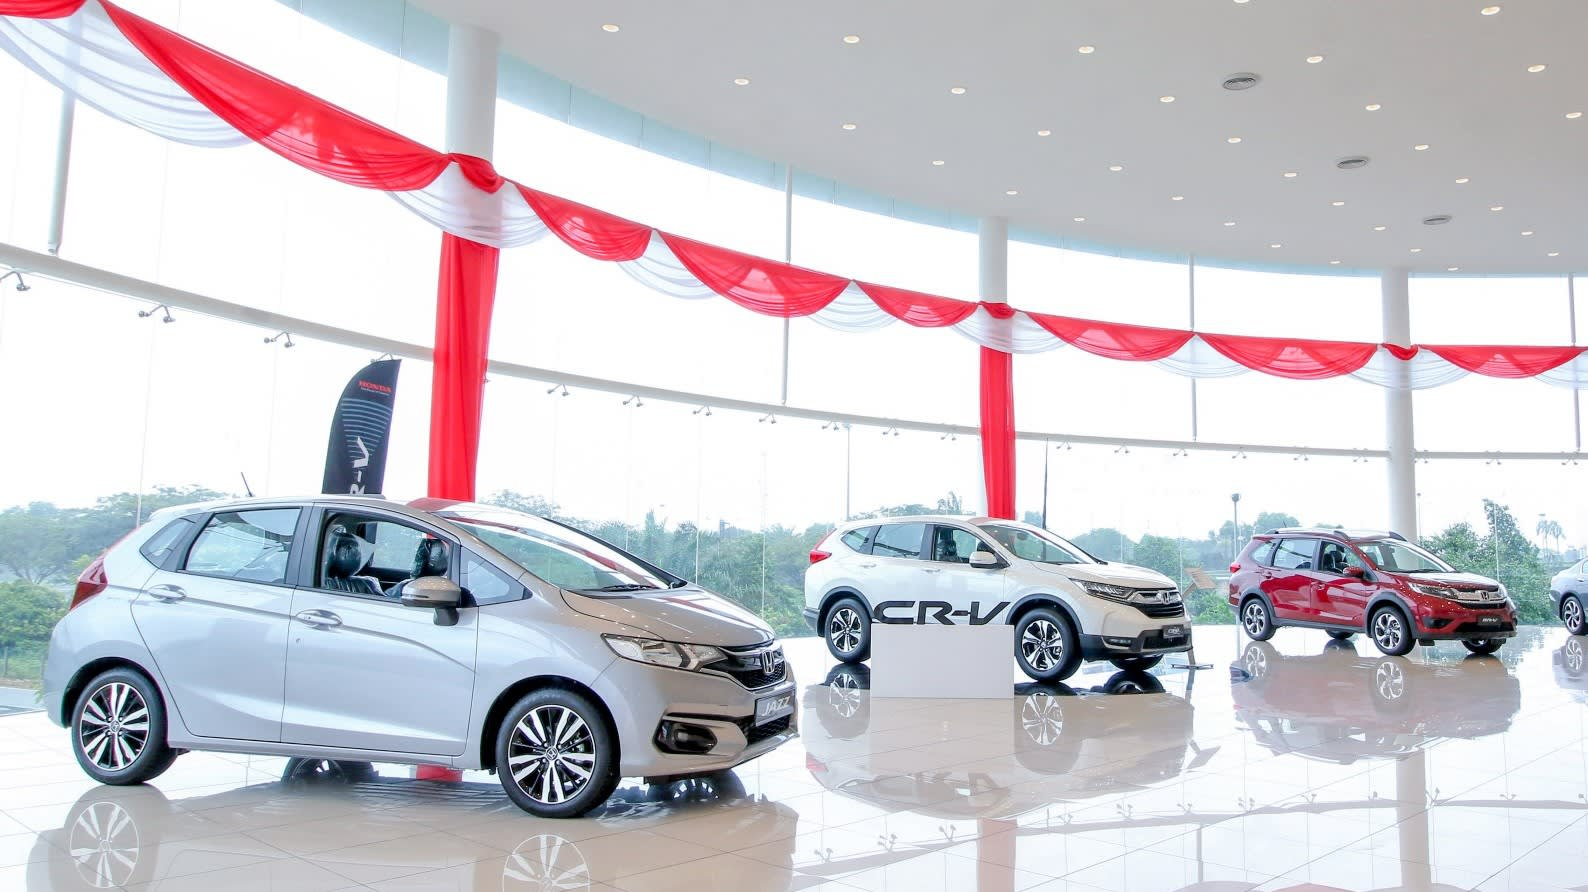 Honda Adds Sales And Service Centers In Malaysia Nikkei Asian Review - Honda center car show